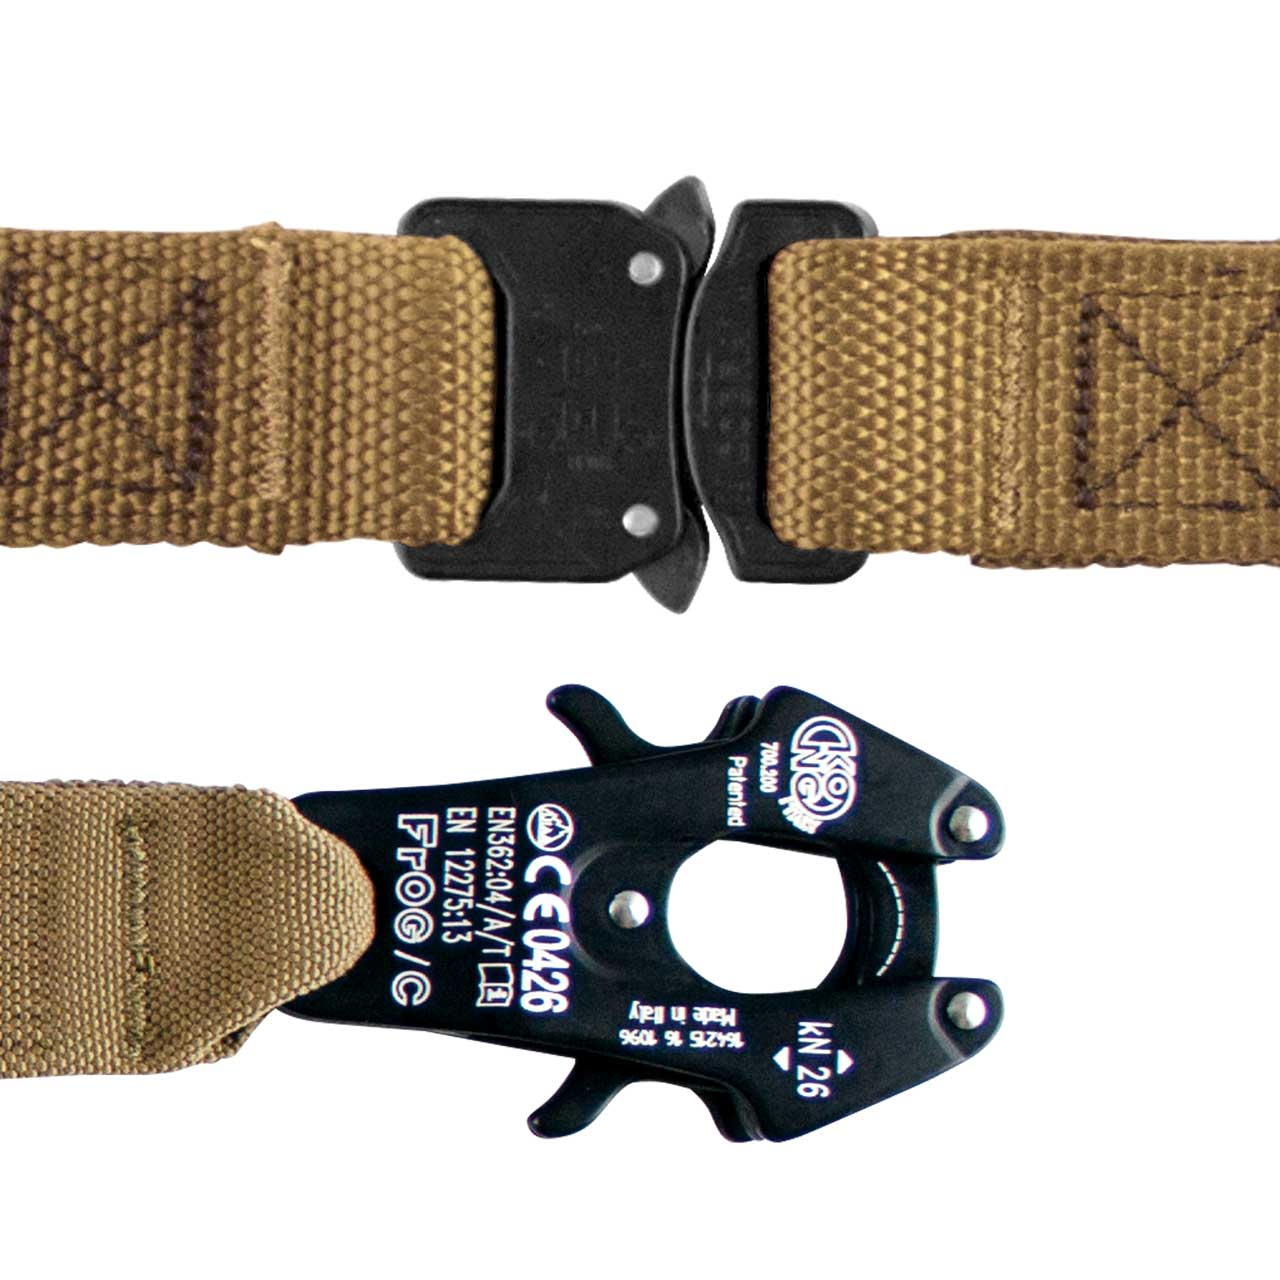 COBRA Buckle & Frog Clamp